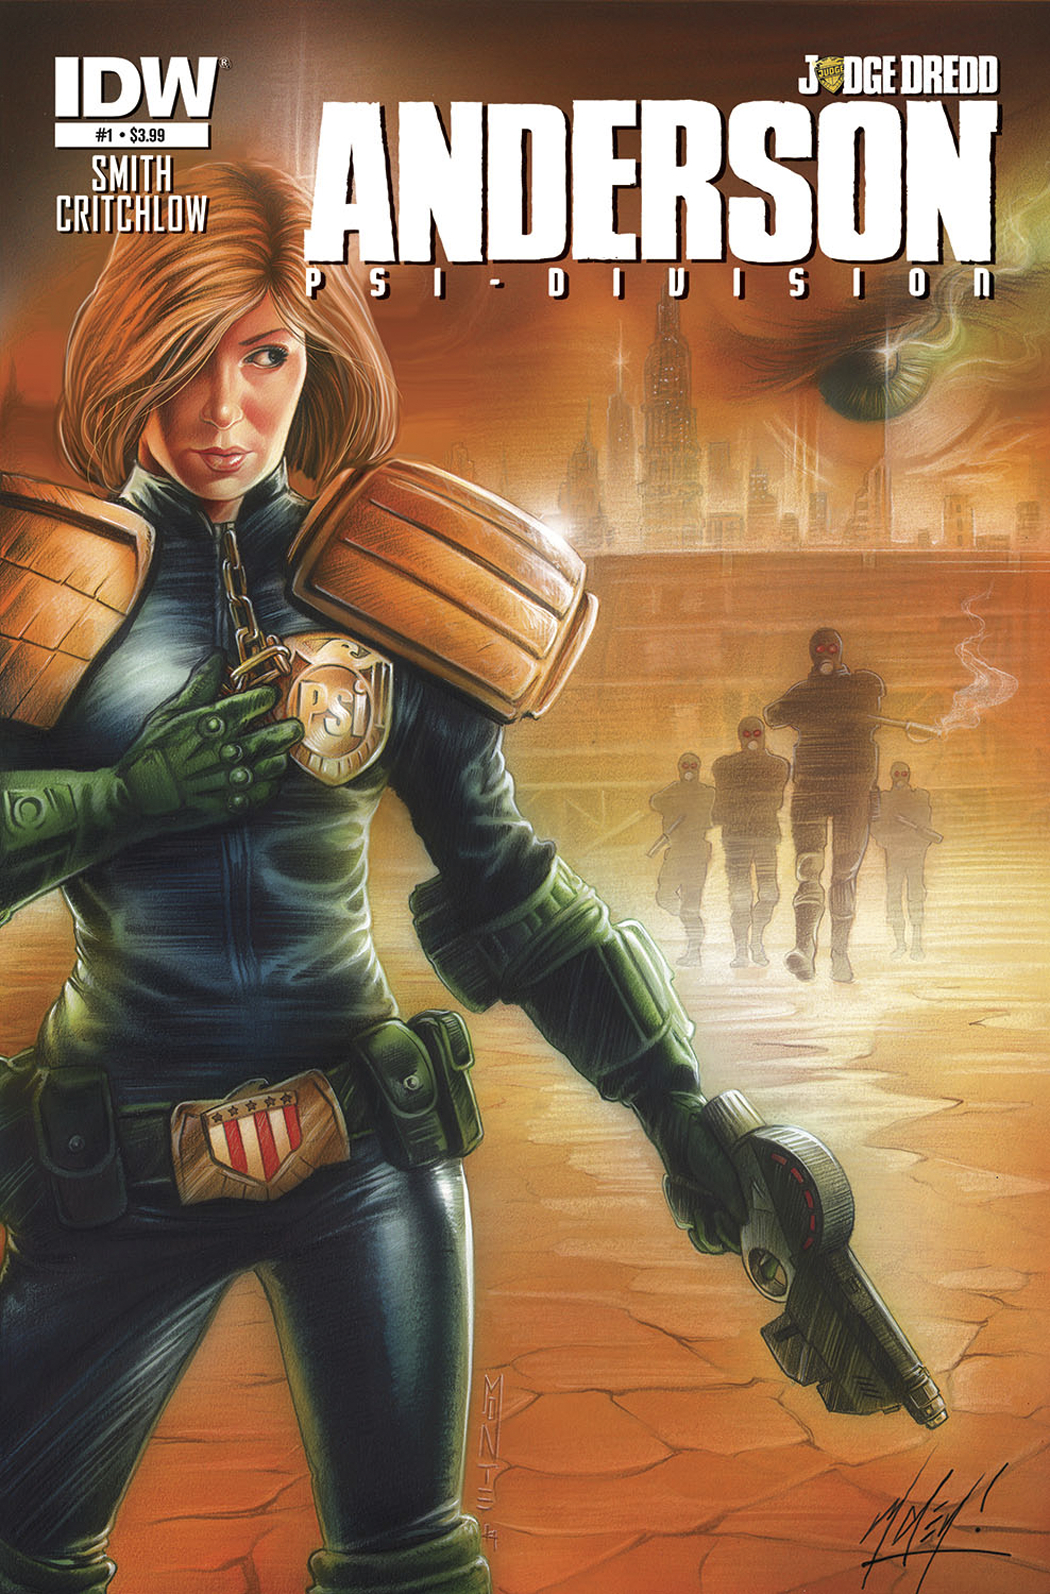 JUDGE DREDD ANDERSON PSI DIVISION #1